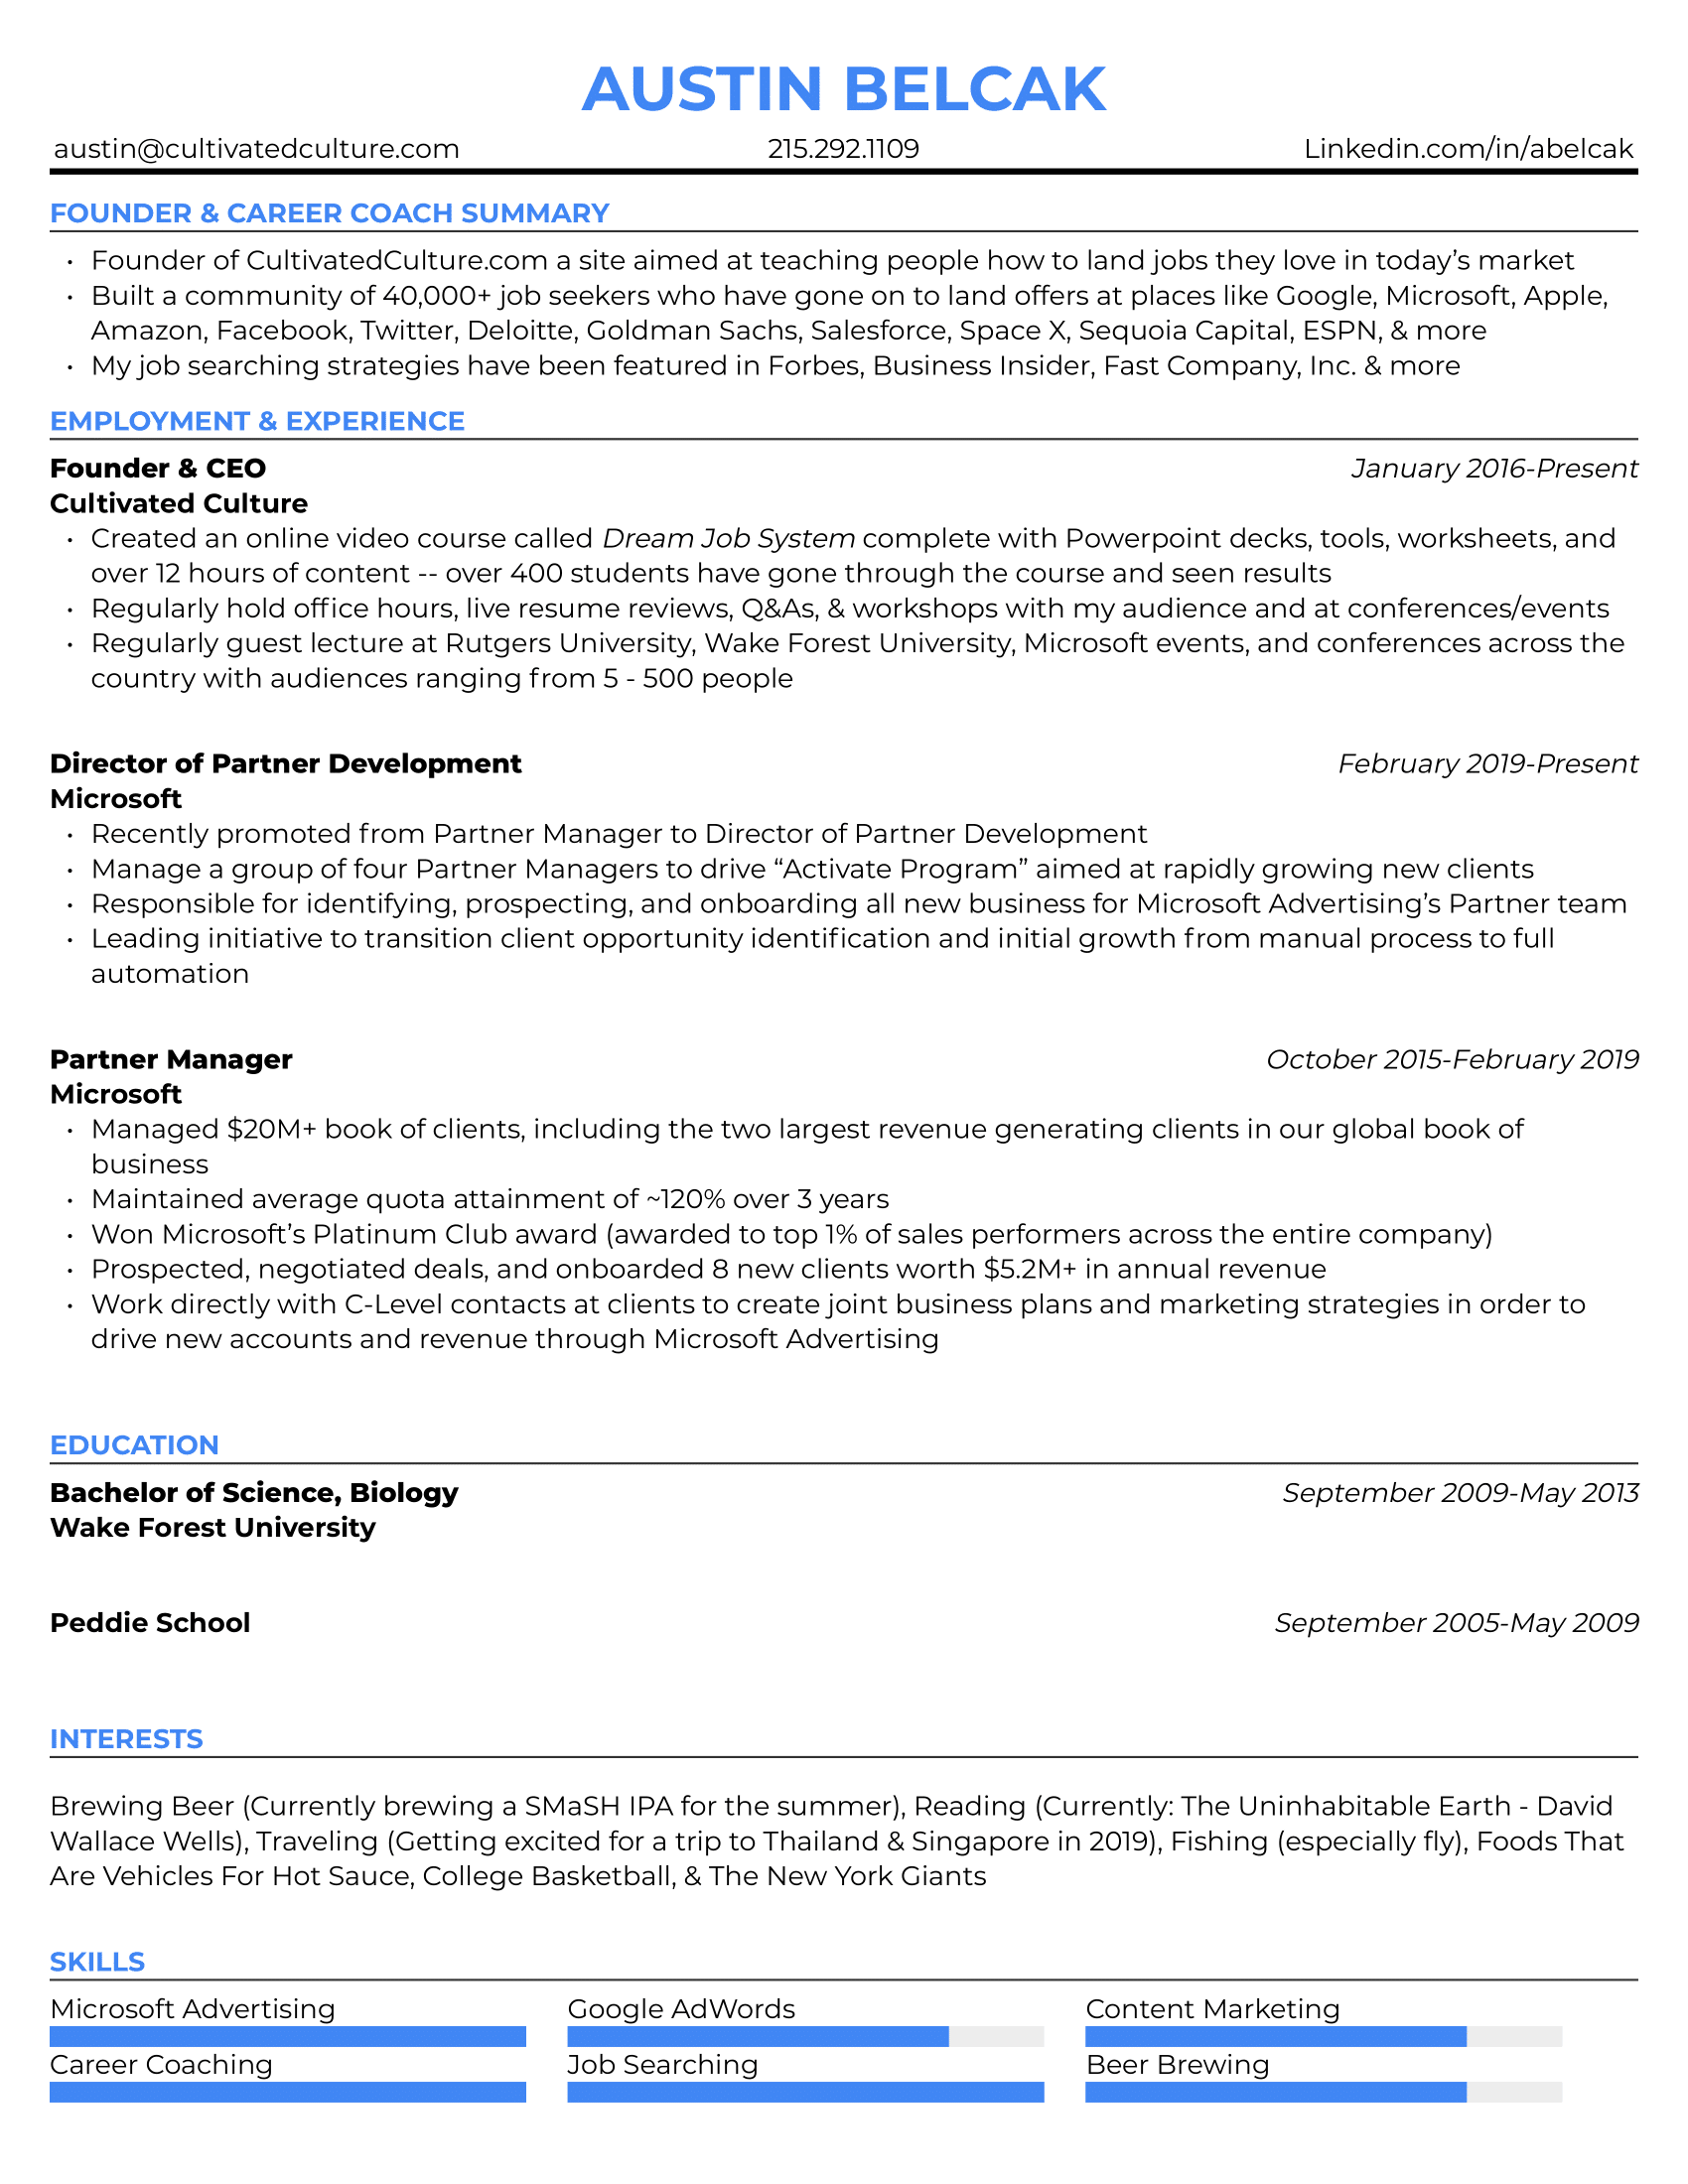 Example of Austin's resume with different font colors